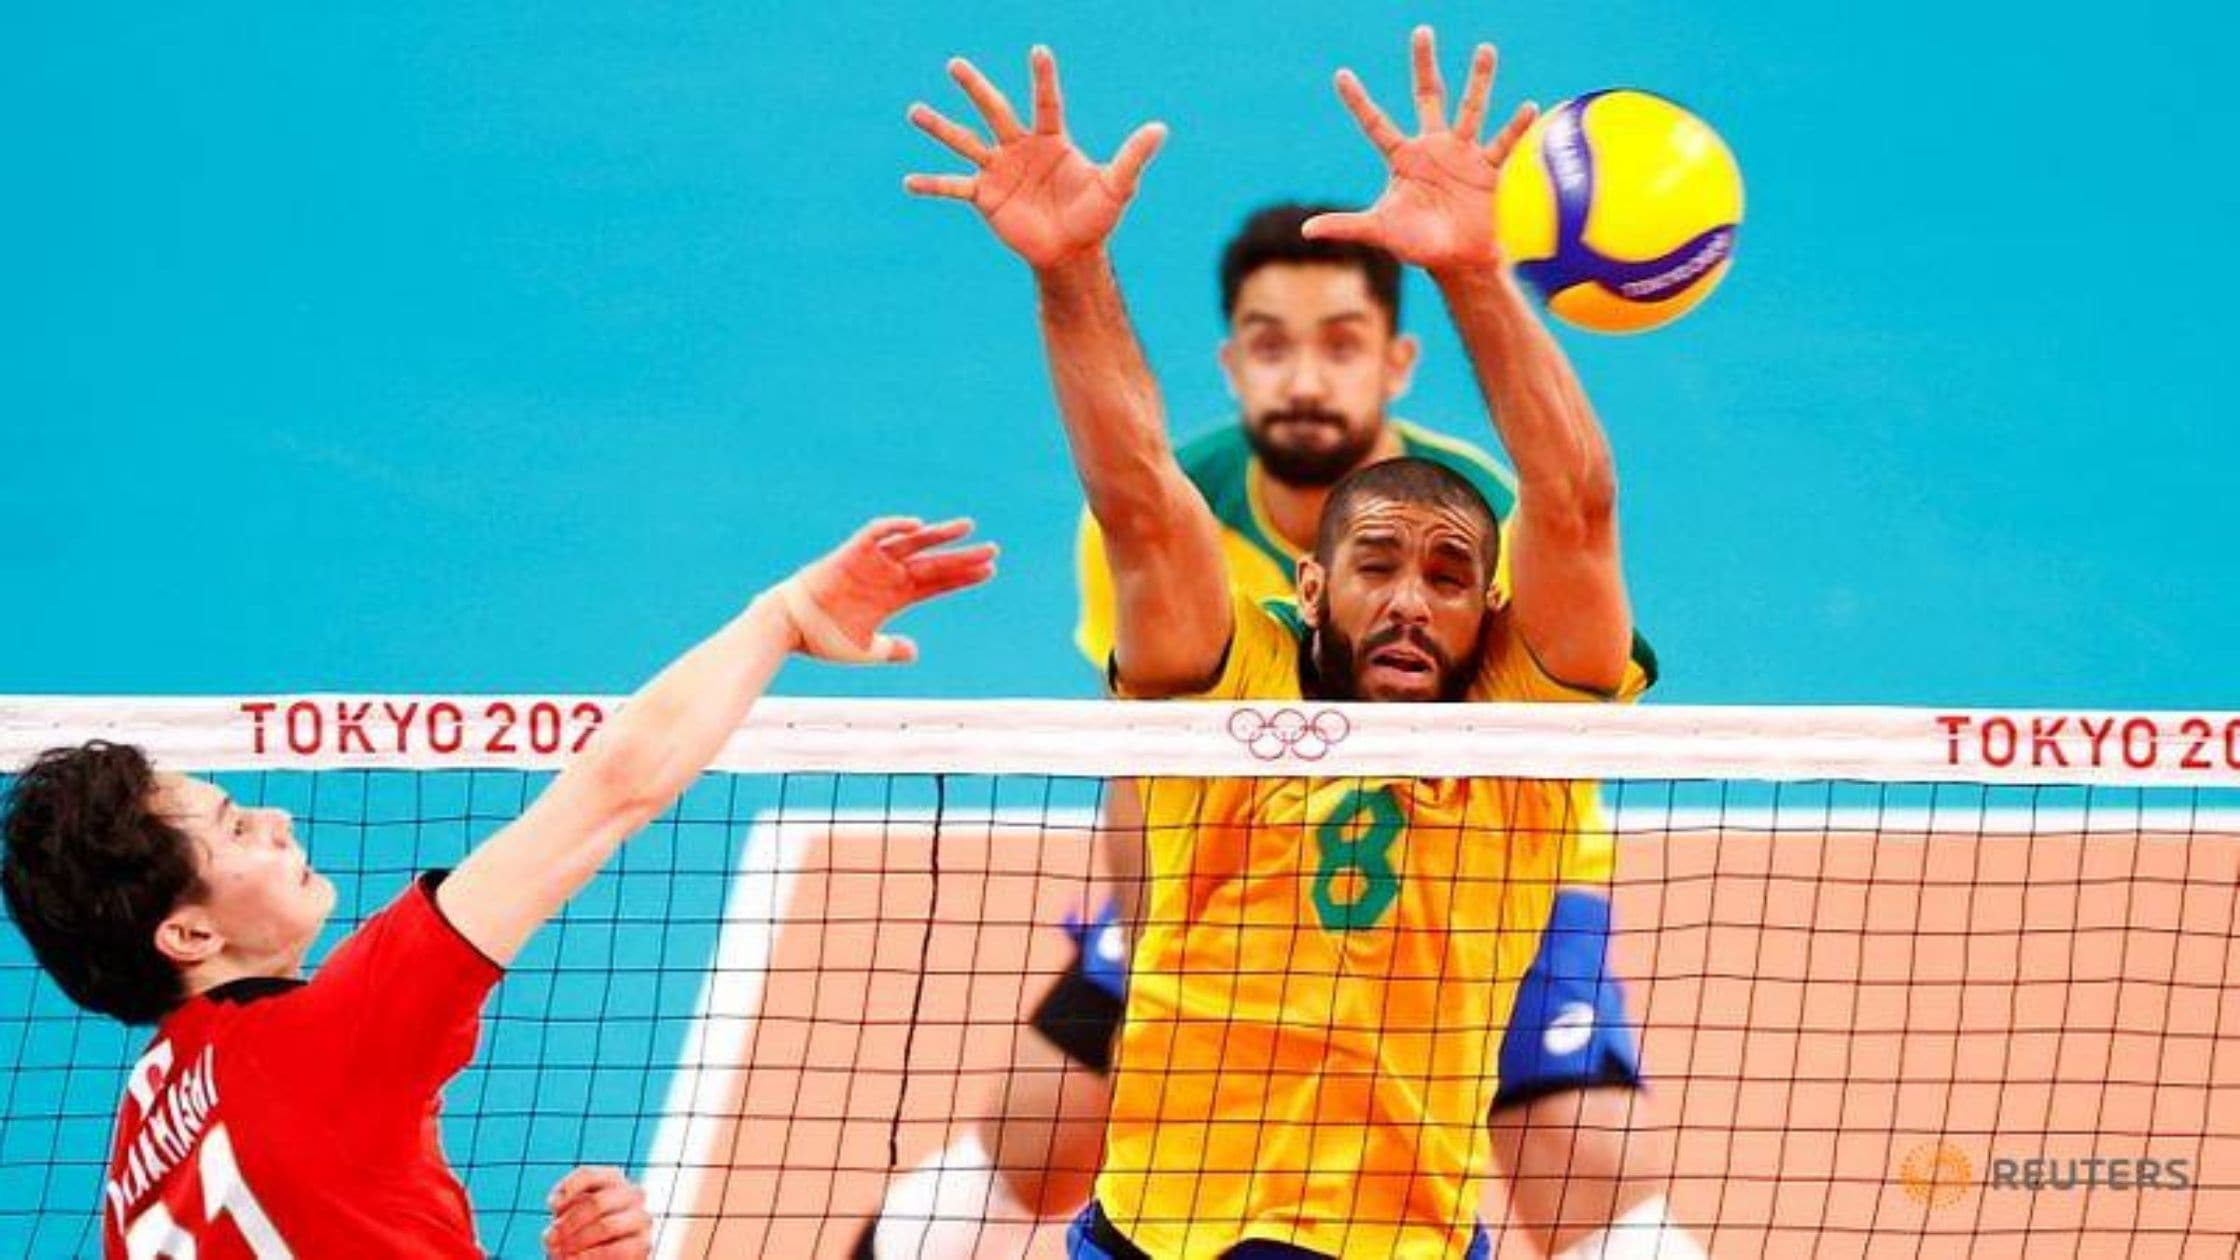 Olympics Volleyball Brazil overpowers hosts Japan to face ROC in semi-finals